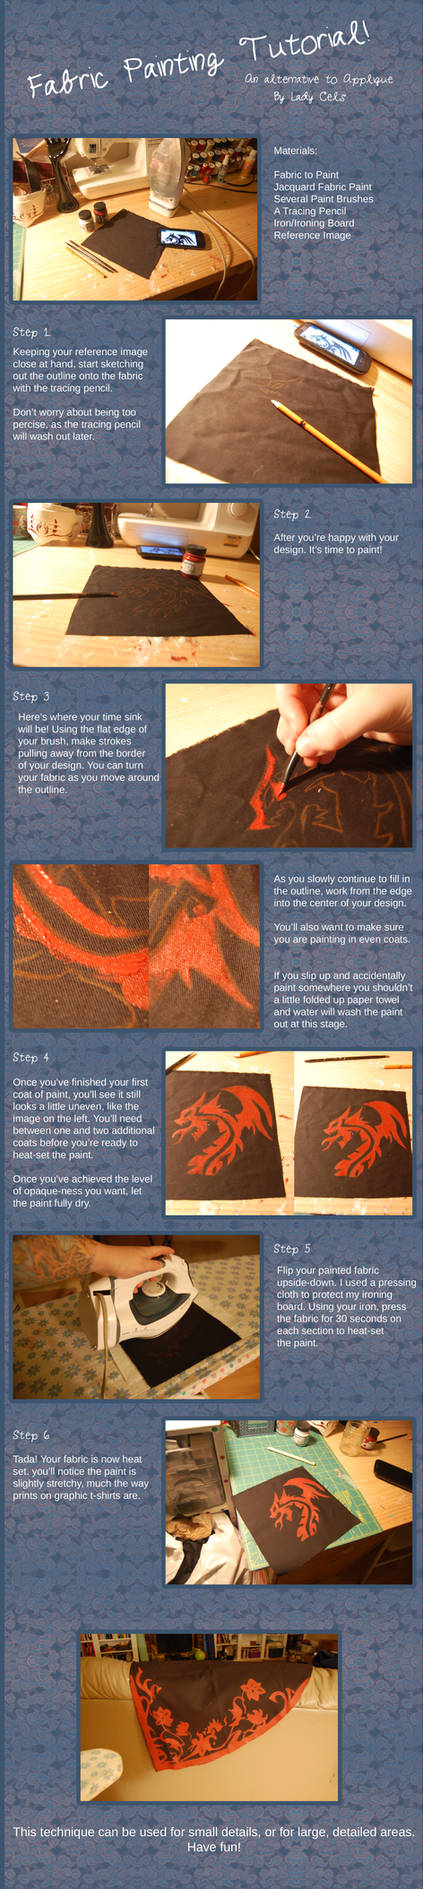 Fabric Painting Tutorial by DragonLadyCels on DeviantArt